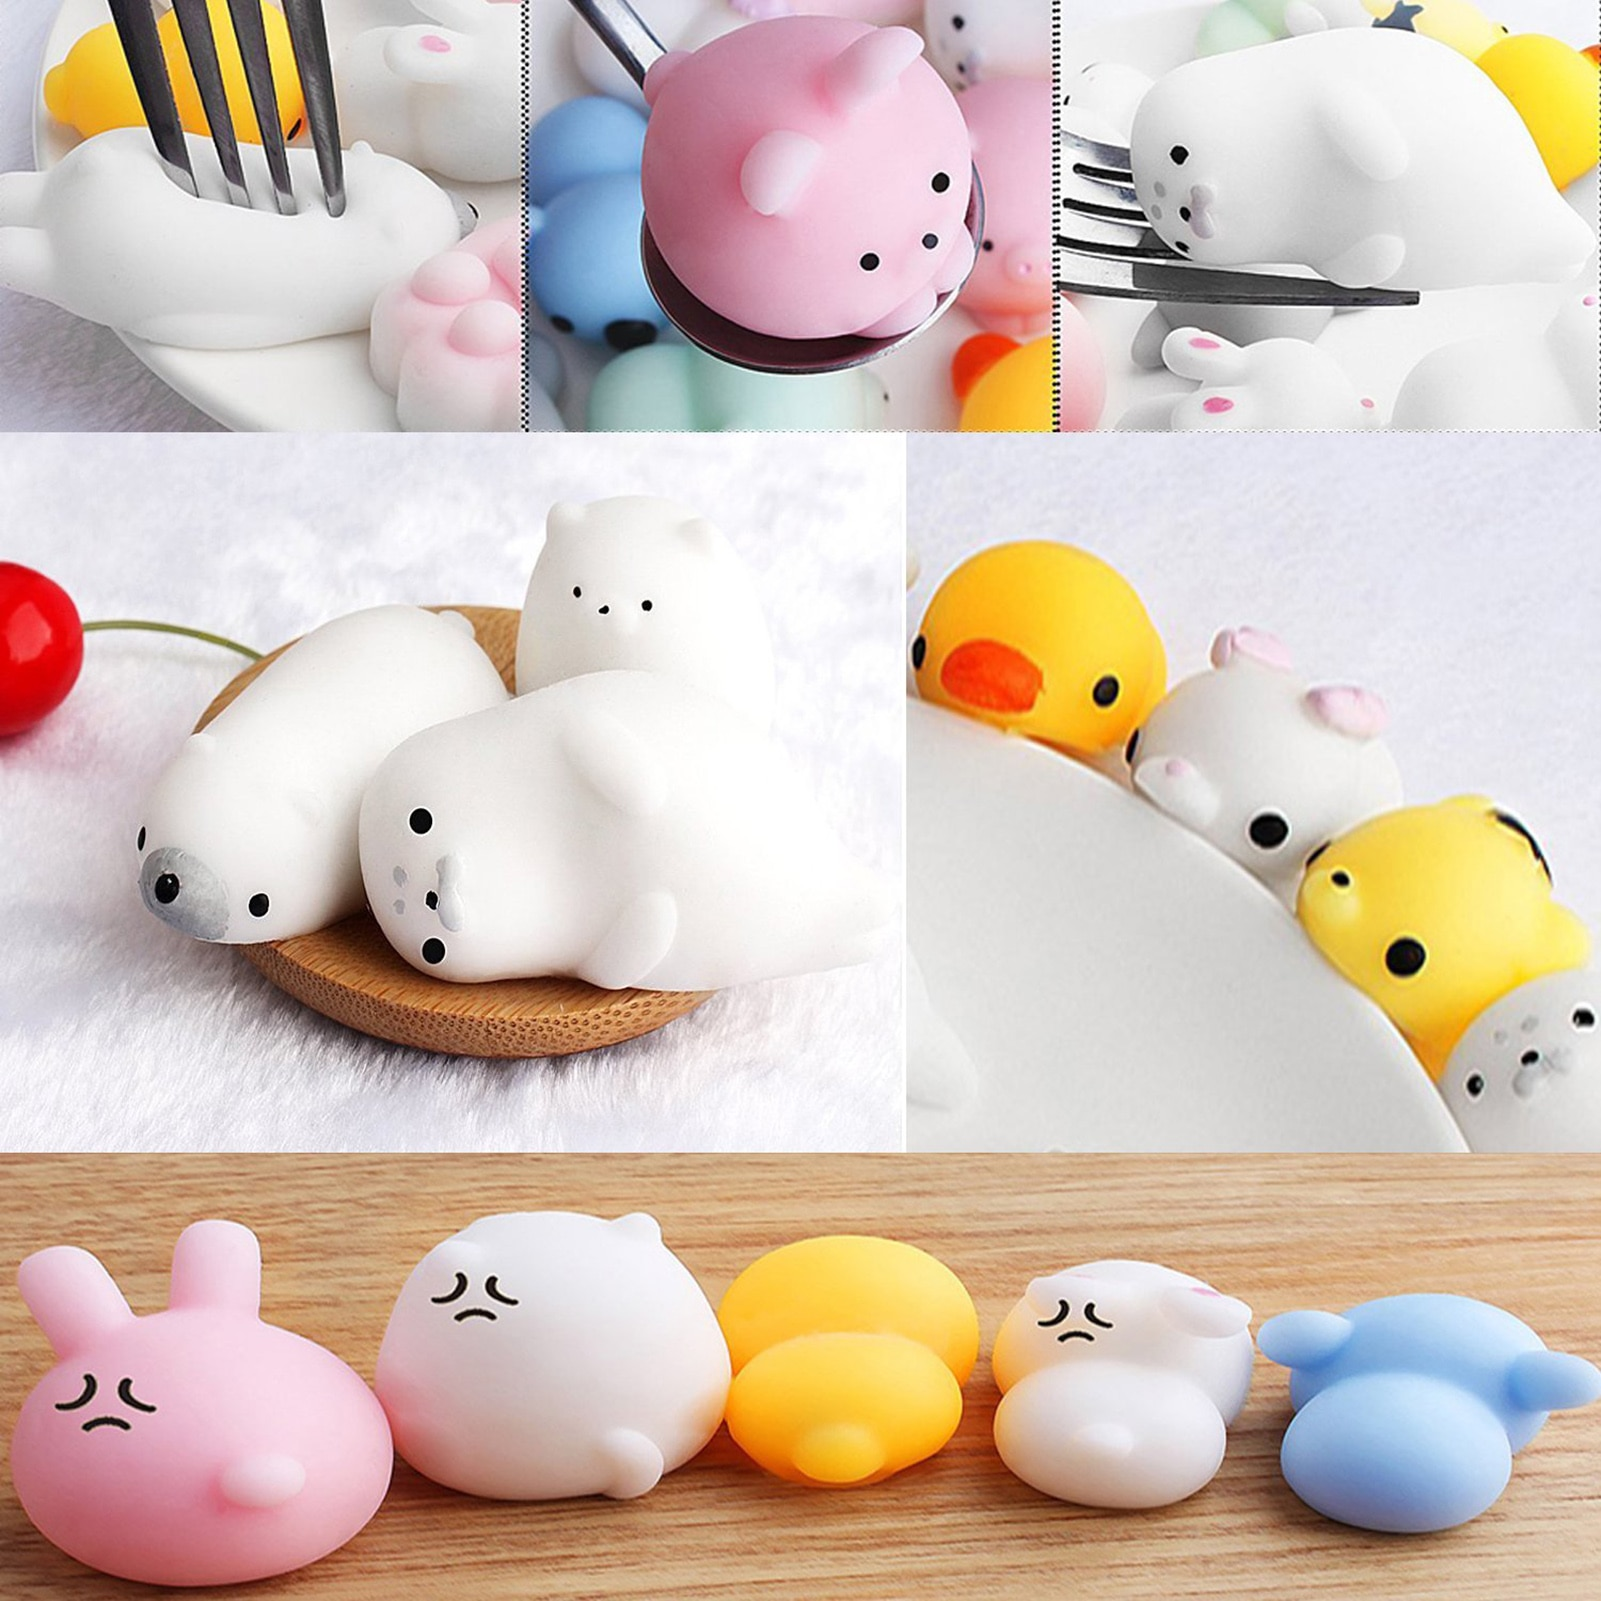 24 Pcs Cute Cat Mini Squishy Antistress Ball Squeeze Rising Soft Sticky Stress Relief Funny Gift Toys for Kids Adult enlarge